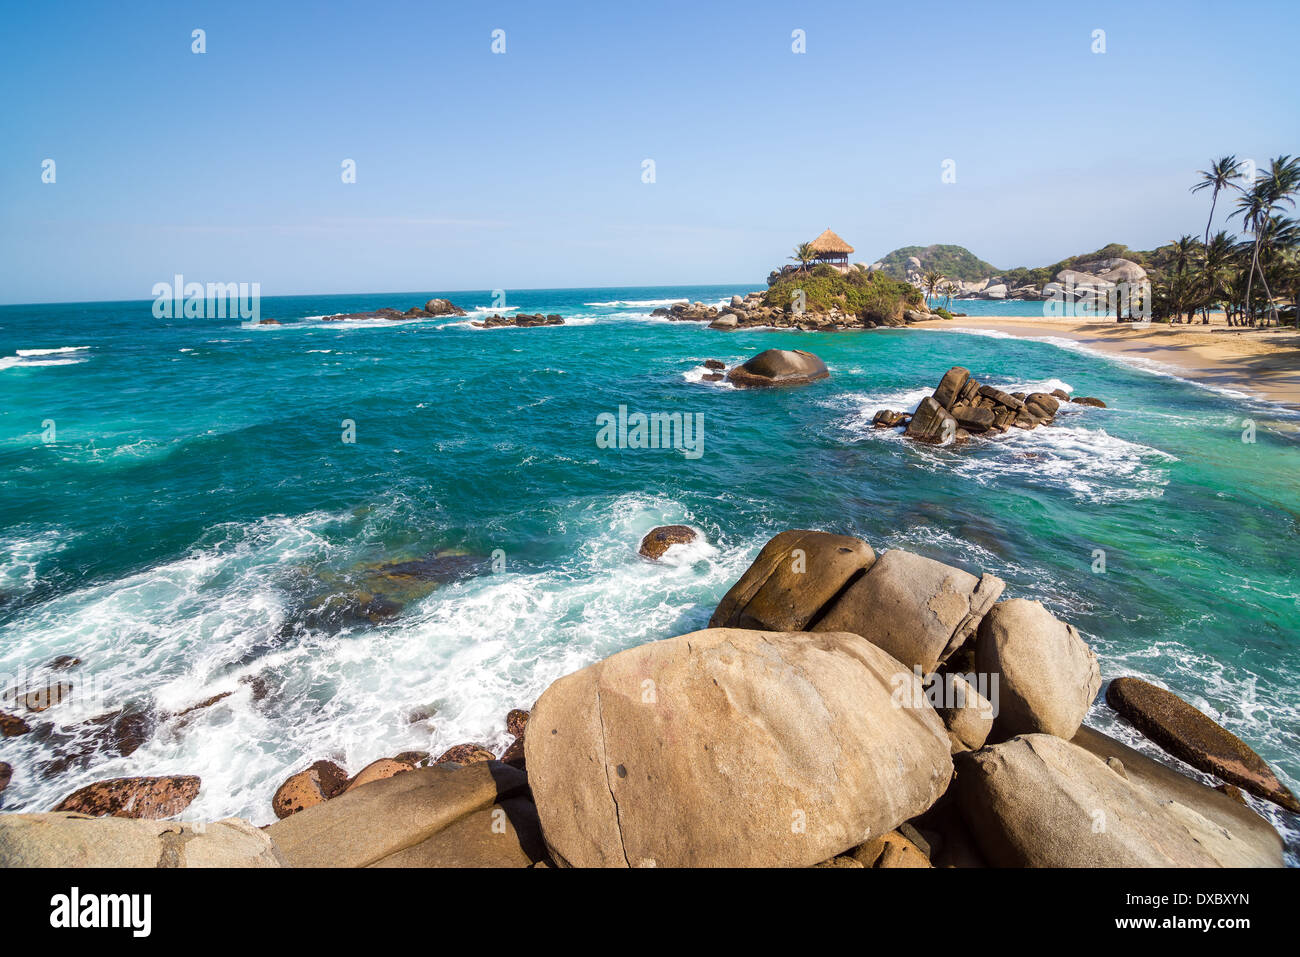 Beach and turquoise water at Cabo San Juan del Guia in Tayrona National Park in Colombia - Stock Image